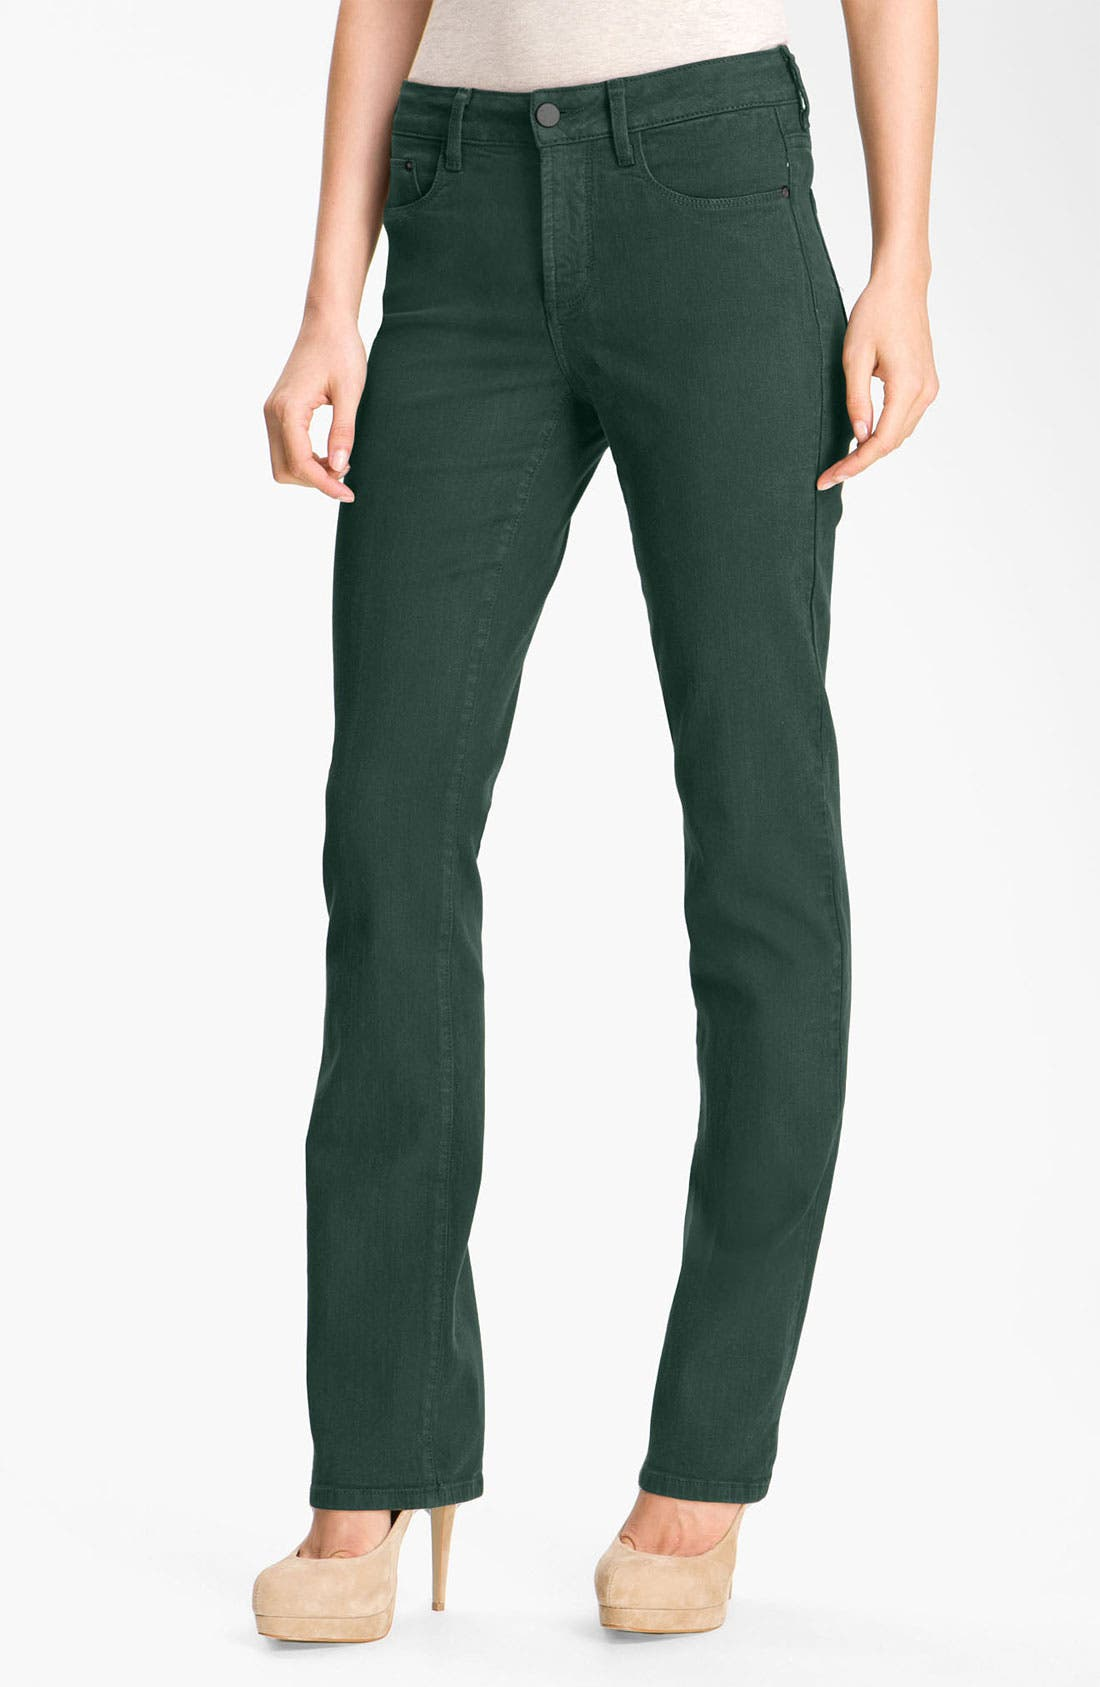 Main Image - NYDJ 'Marilyn' Colored Straight Leg Stretch Jeans (Petite)